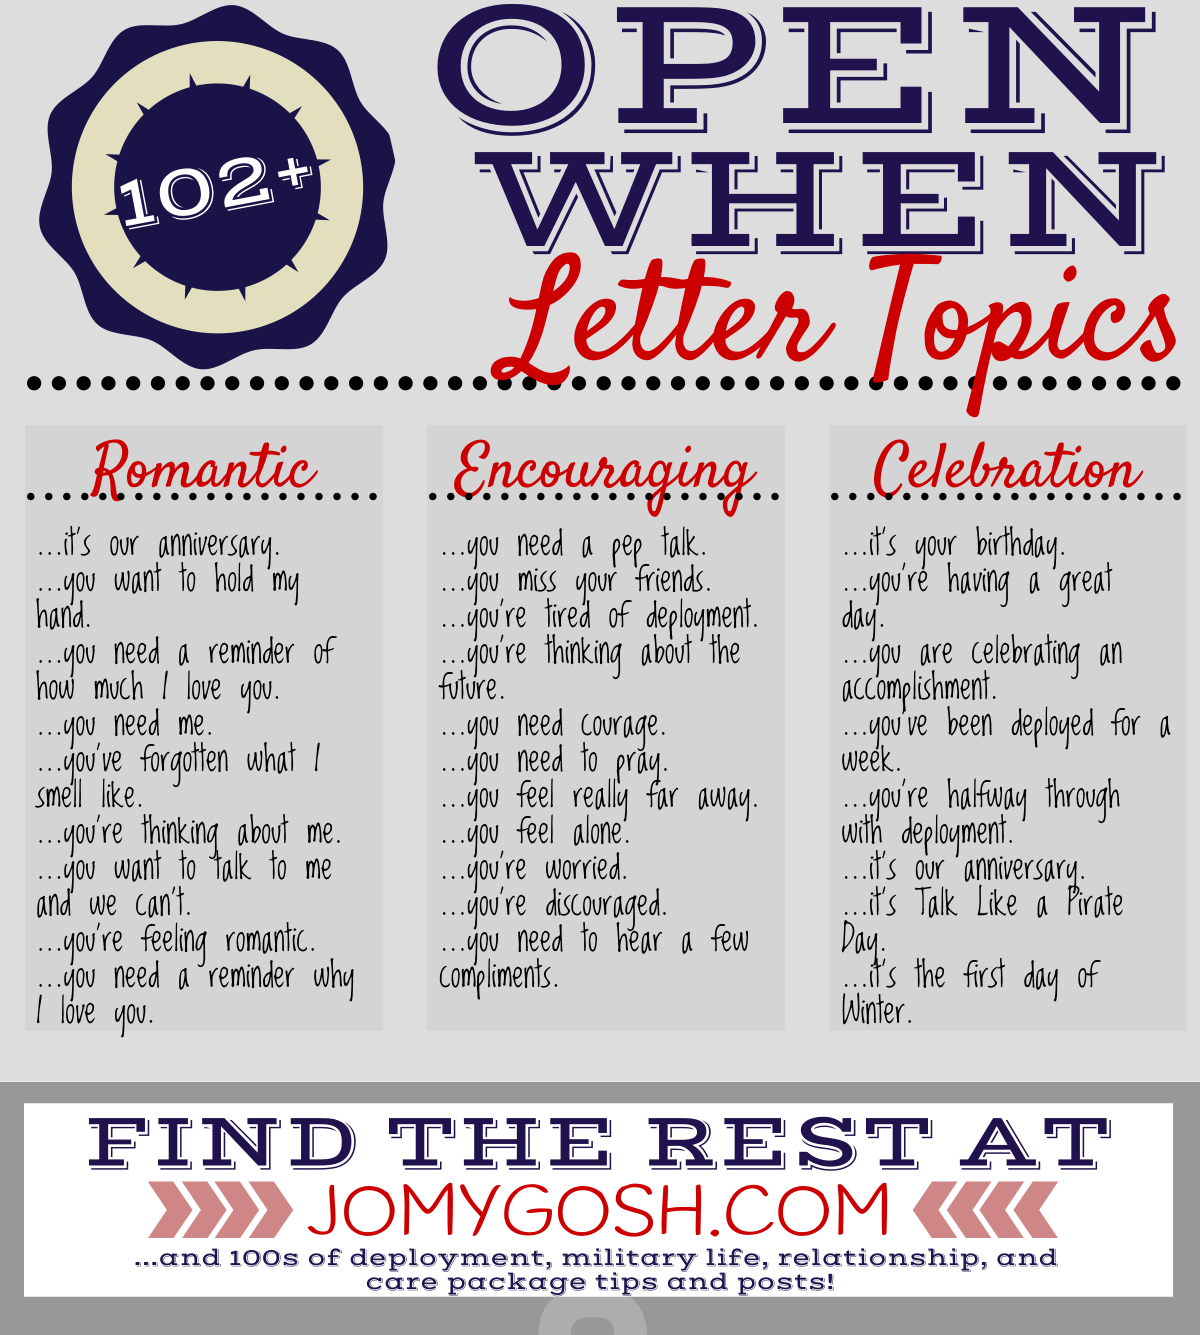 """102+ """"Open When"""" Letter Topics 